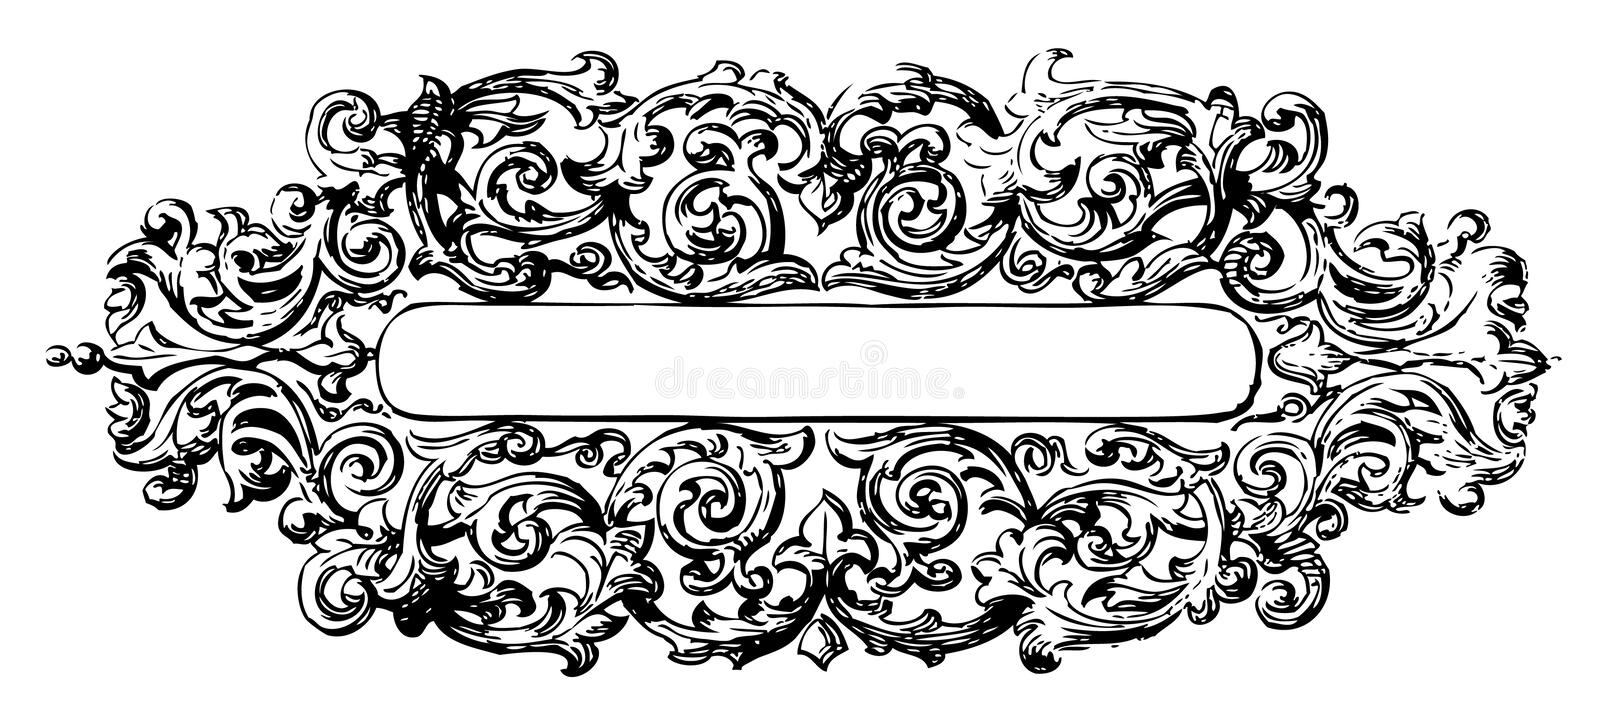 Download Floral Frame Vector stock vector. Image of classic, modern - 6625829